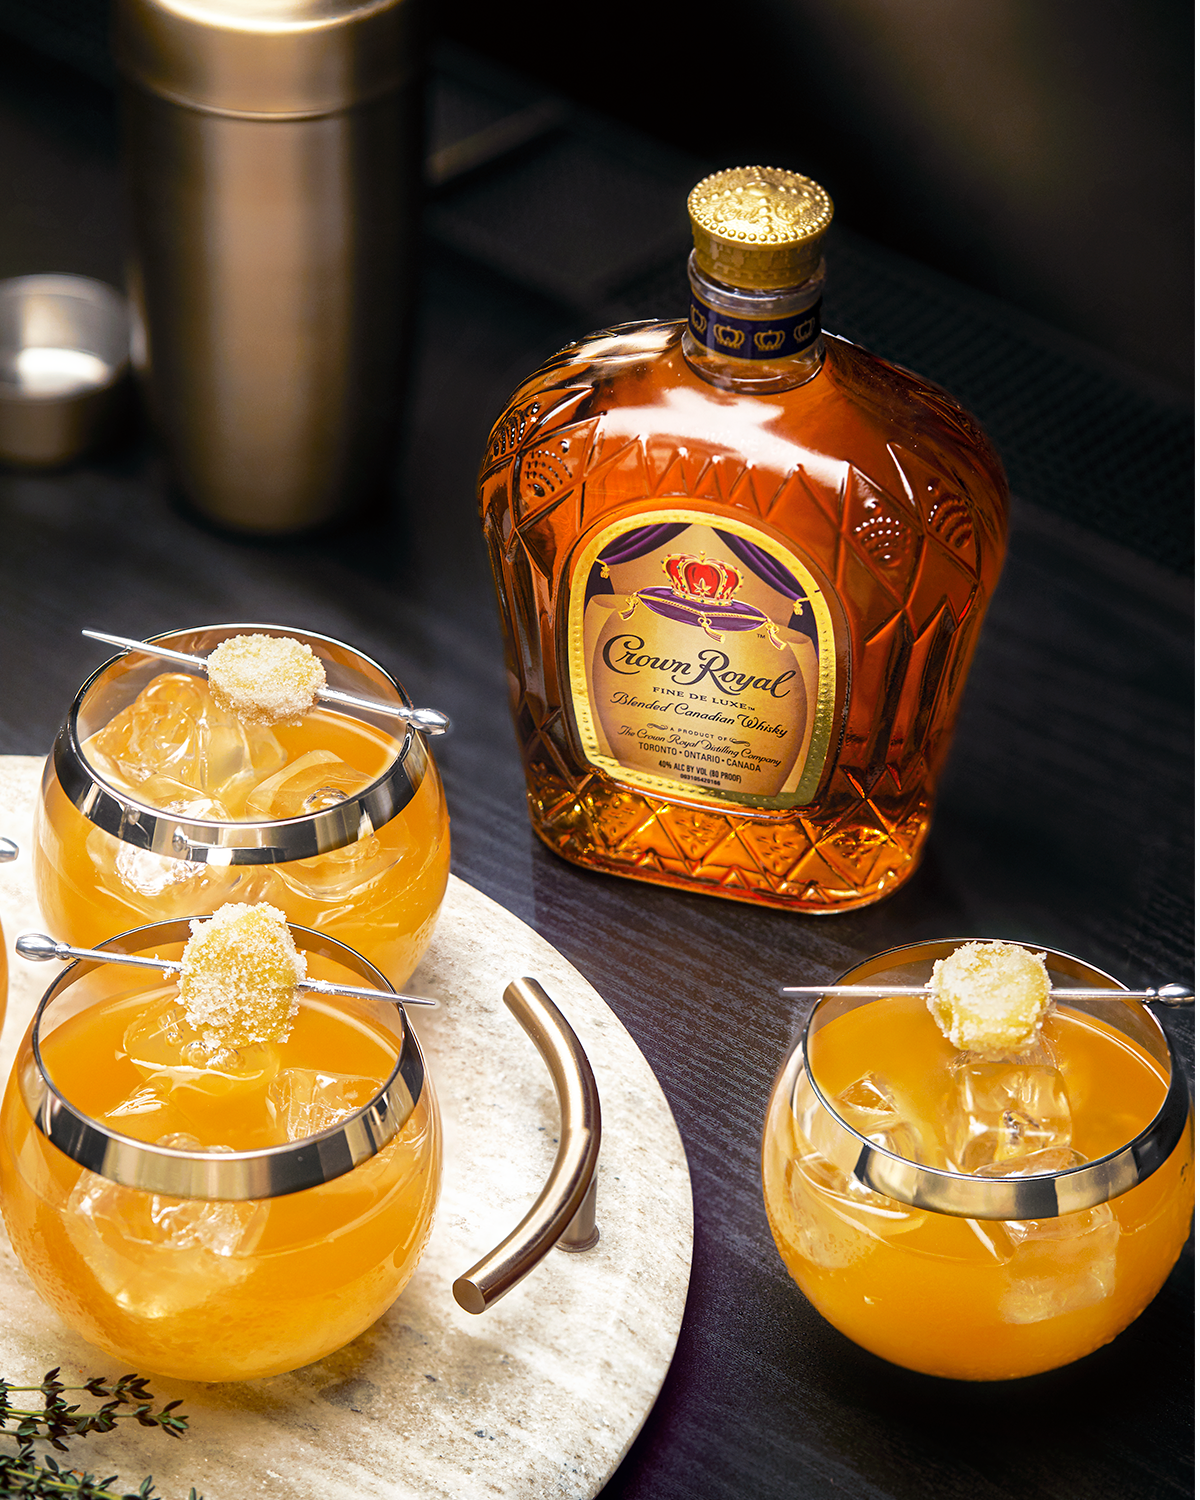 Crown Royal Clementine & Ginger Old Fashioned Whisky Cocktail